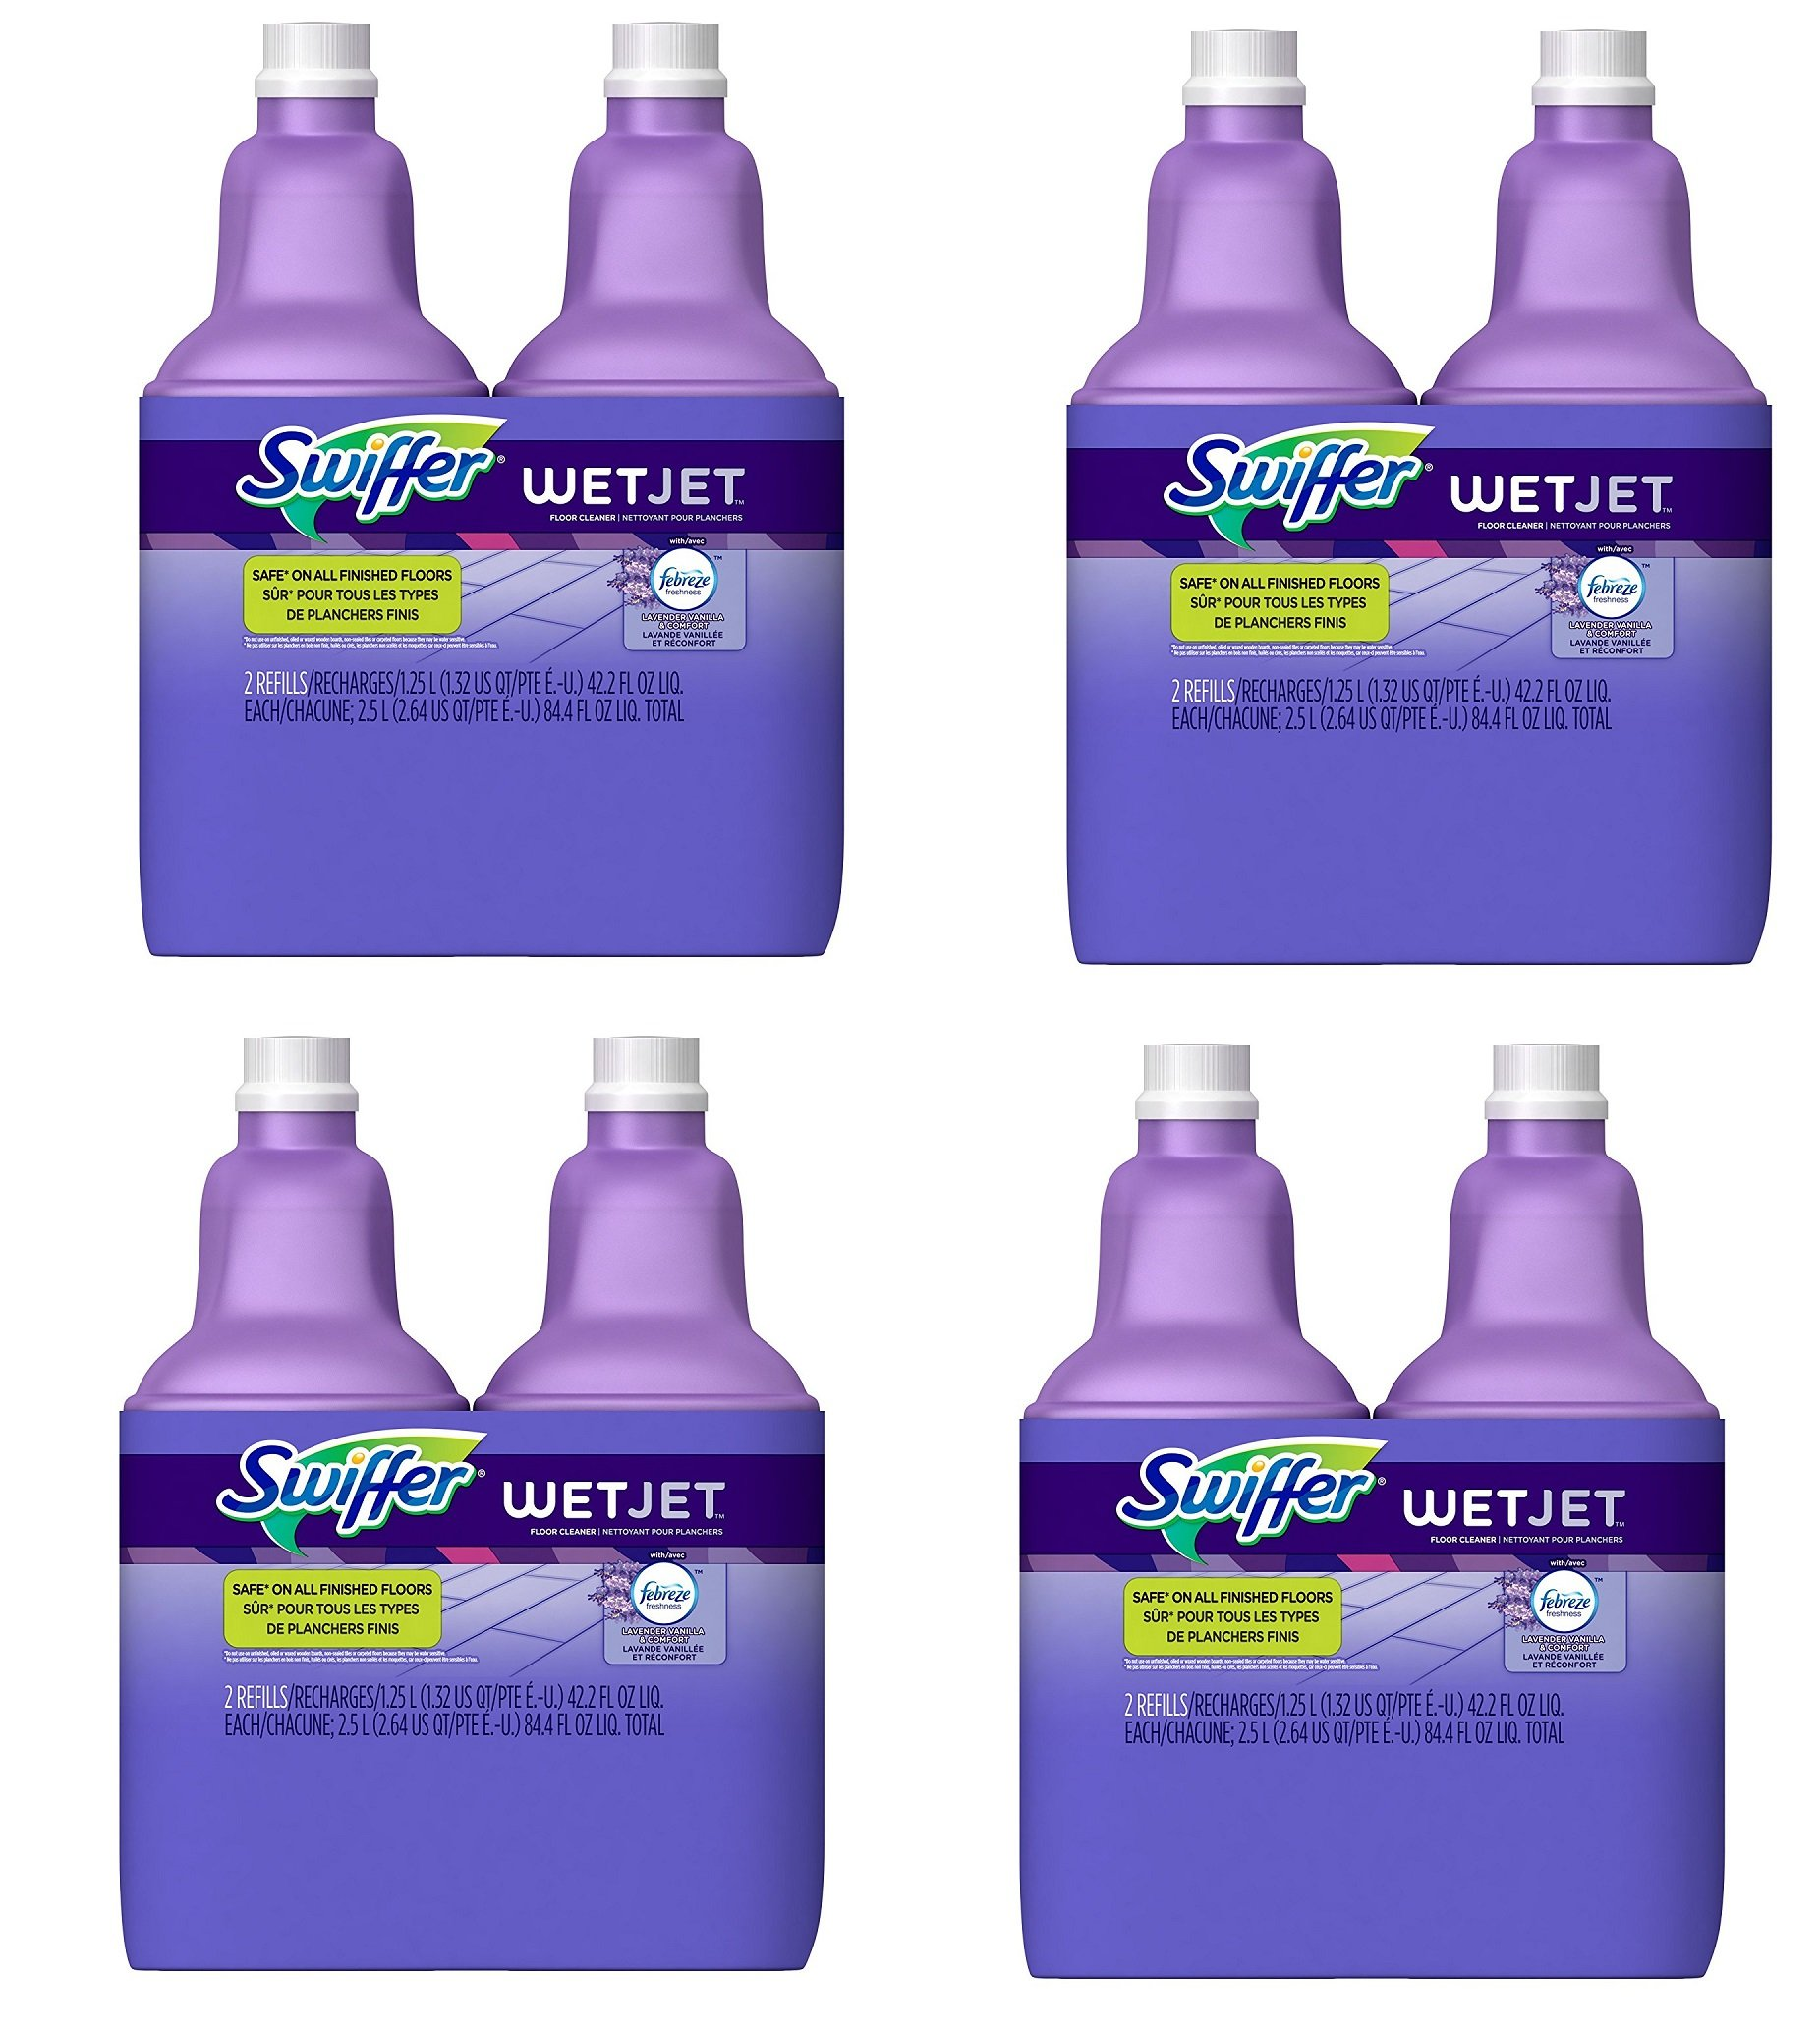 Swiffer WetJet Multi-Purpose Floor and Hardwood Cleaner Solution with Febreze Refill, Lavendar Vanilla and Comfort Scent, 1.25 Liter, OKpFMr 8 pack